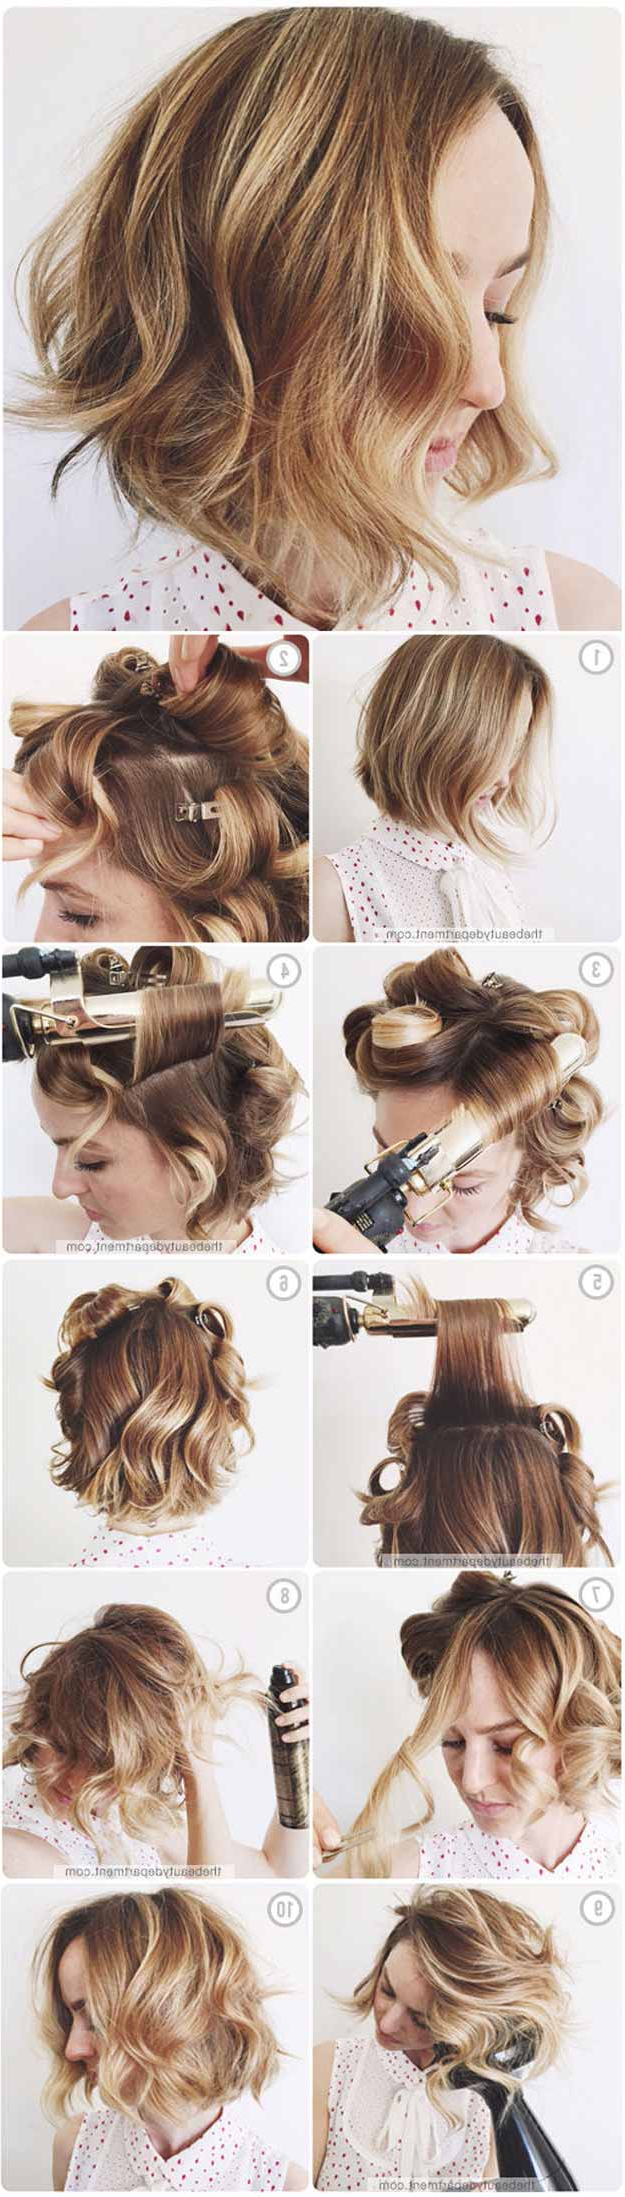 33 Best Hairstyles For Your 20S – The Goddess With Regard To 20S Short Hairstyles (View 3 of 25)